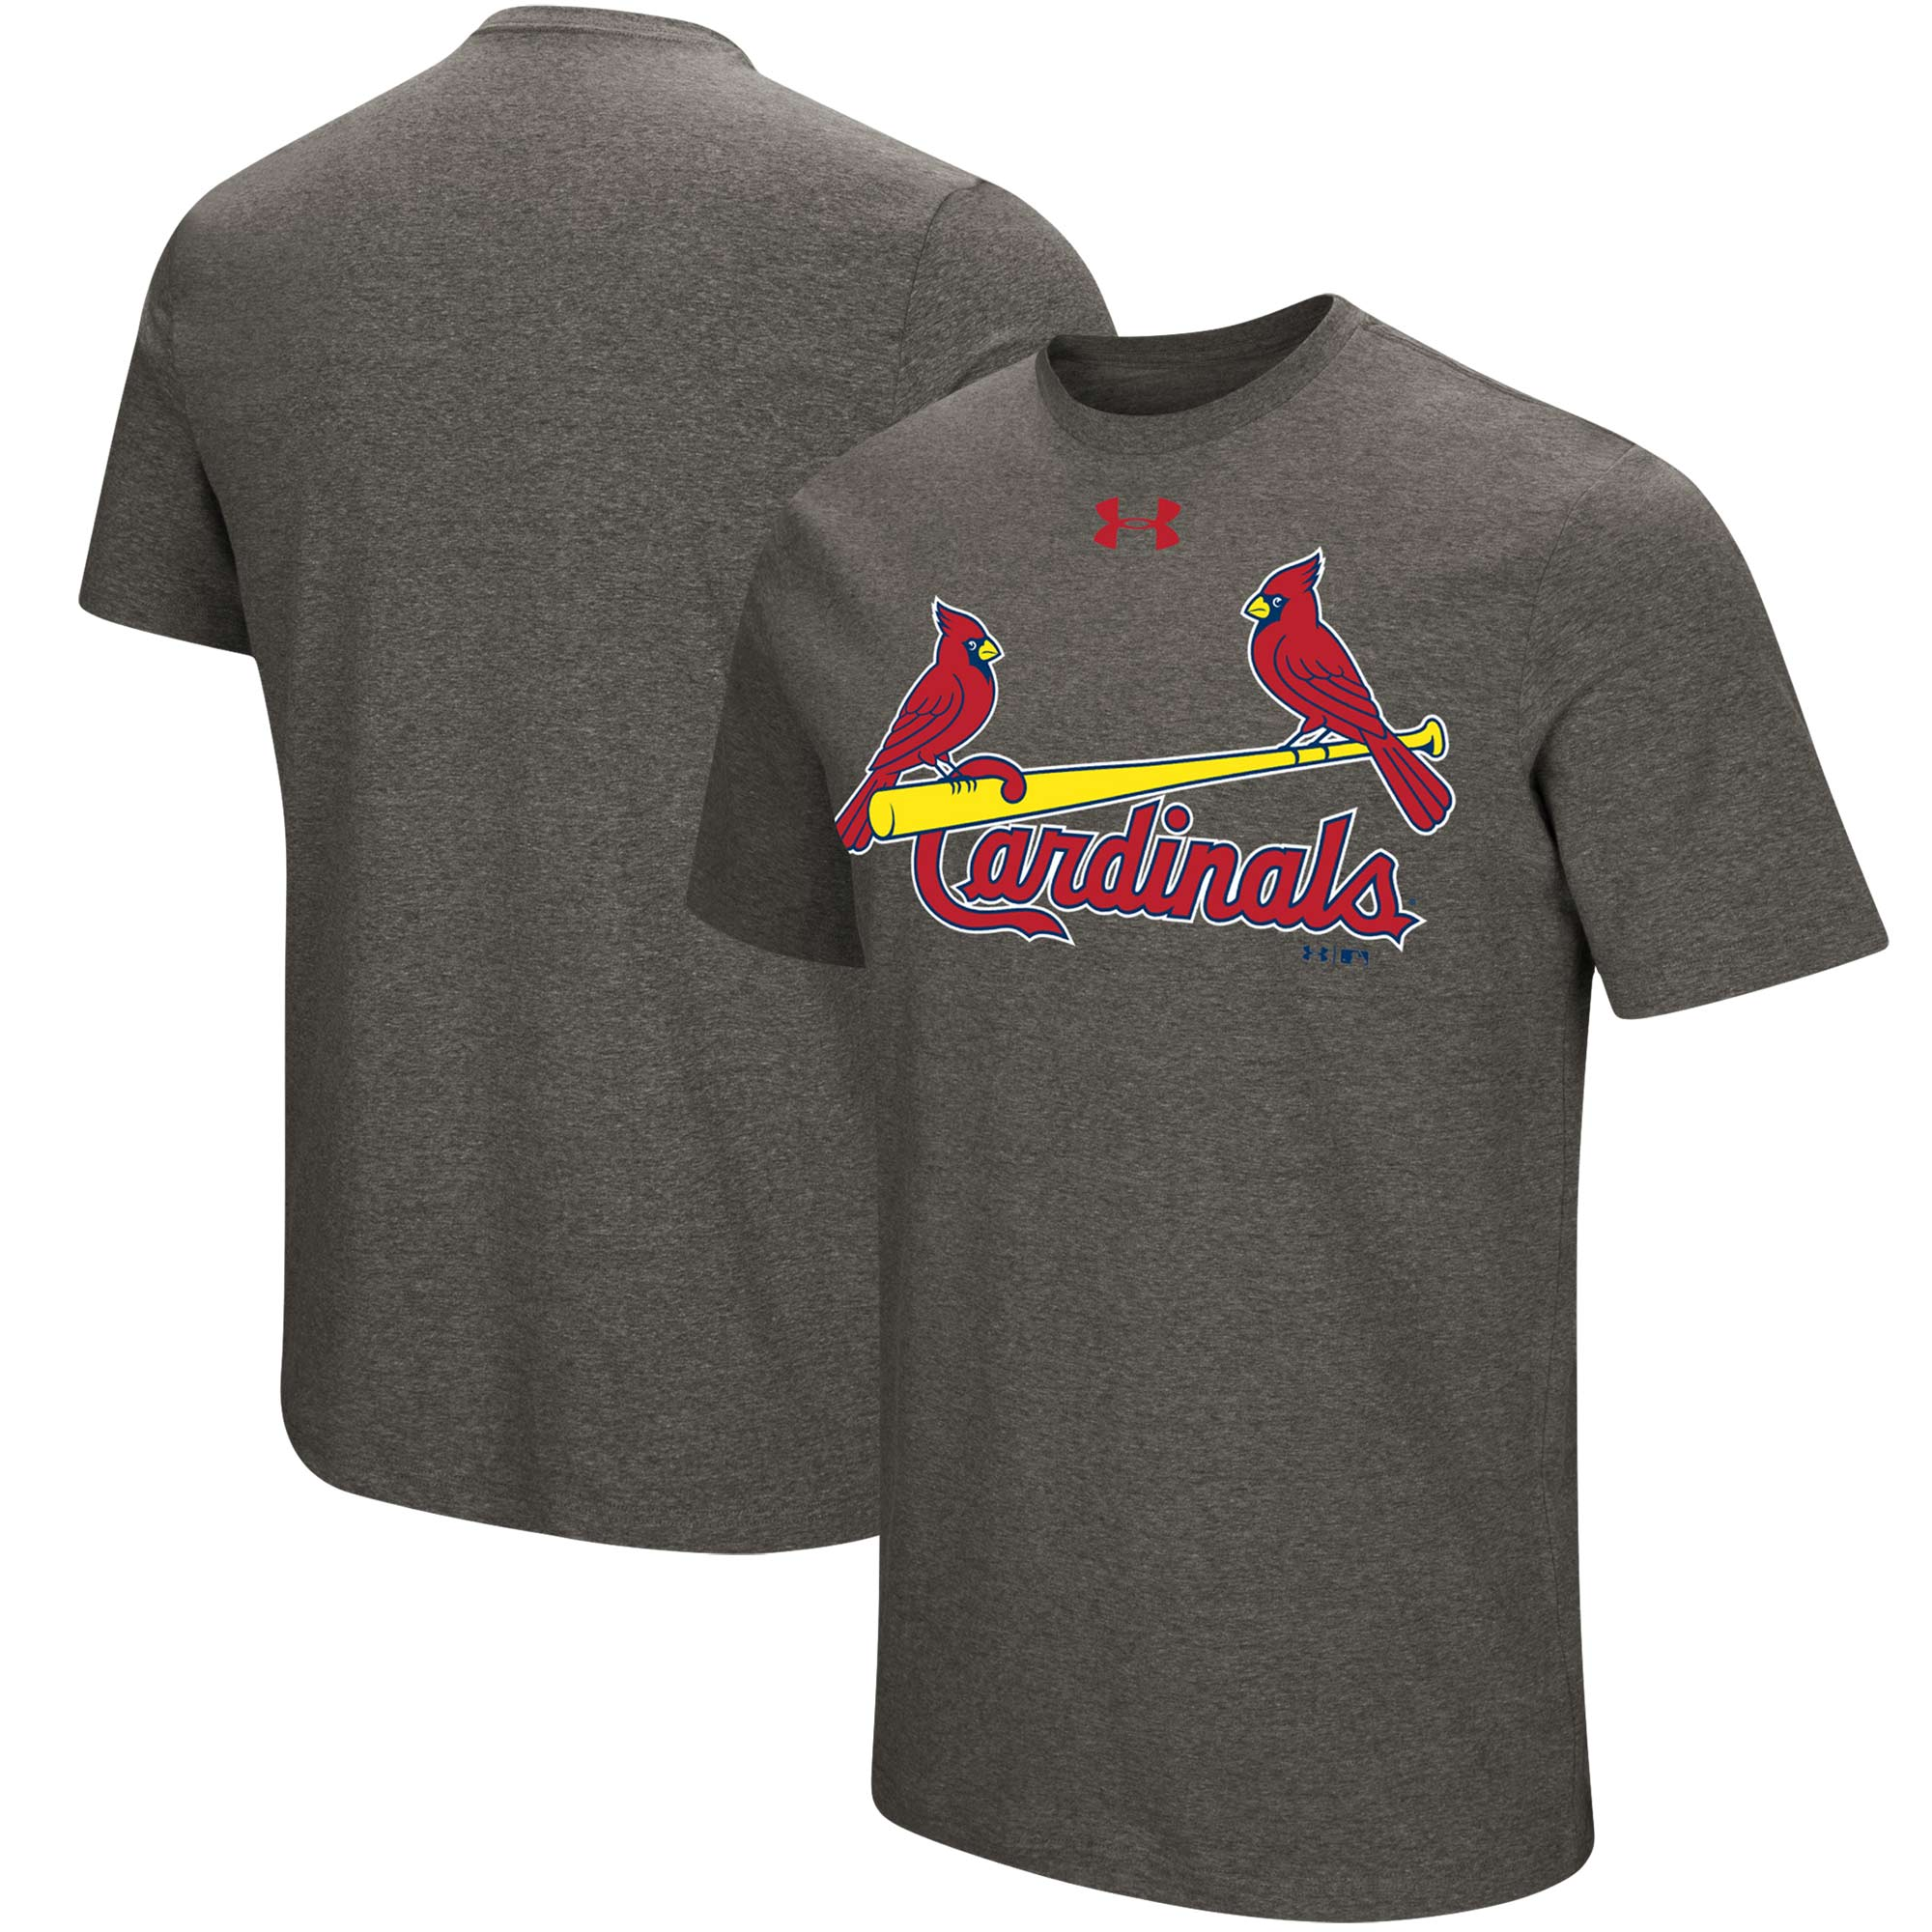 St. Louis Cardinals Under Armour Passion Road Team Font T-Shirt - Heathered Gray